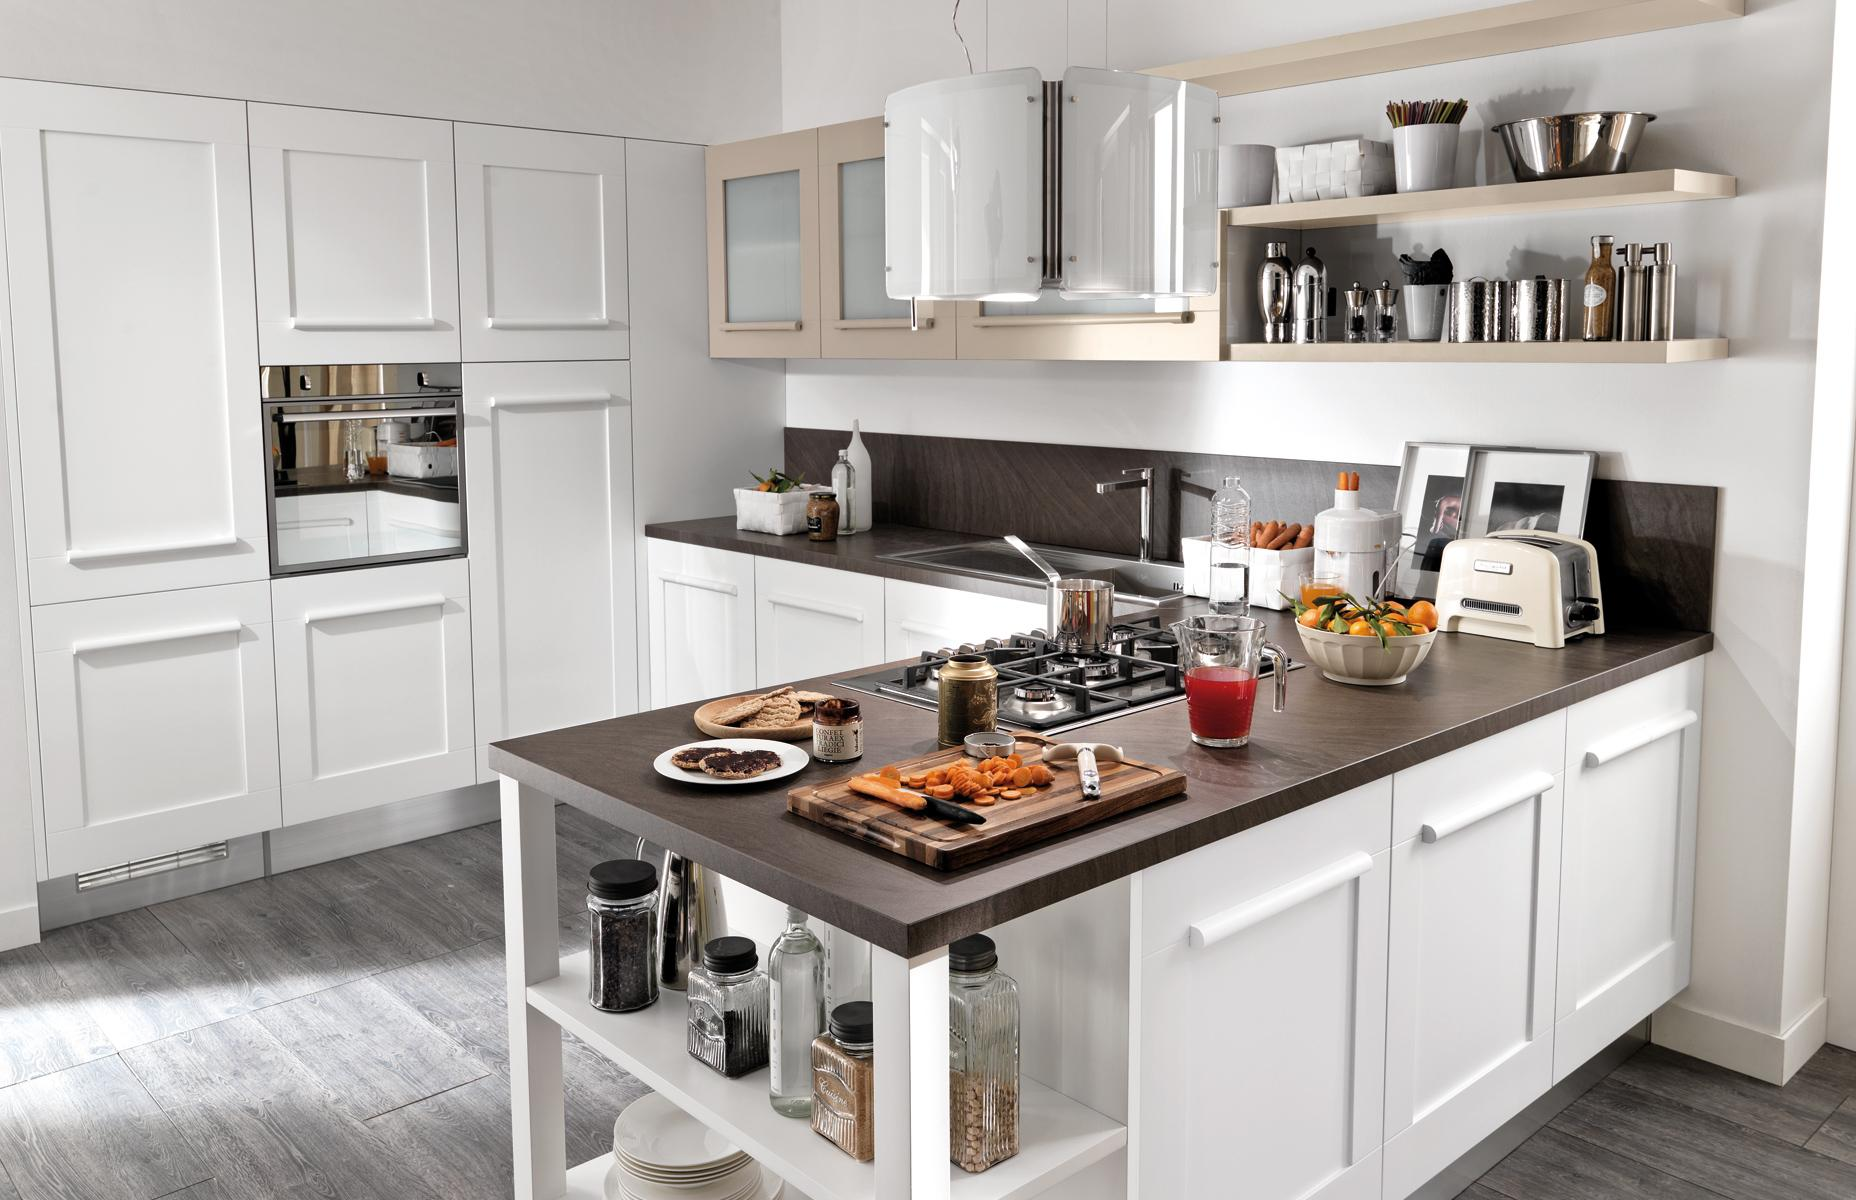 Cucine simple cucine with cucine cool with cucine - Cucina lube agnese bianco camelia ...